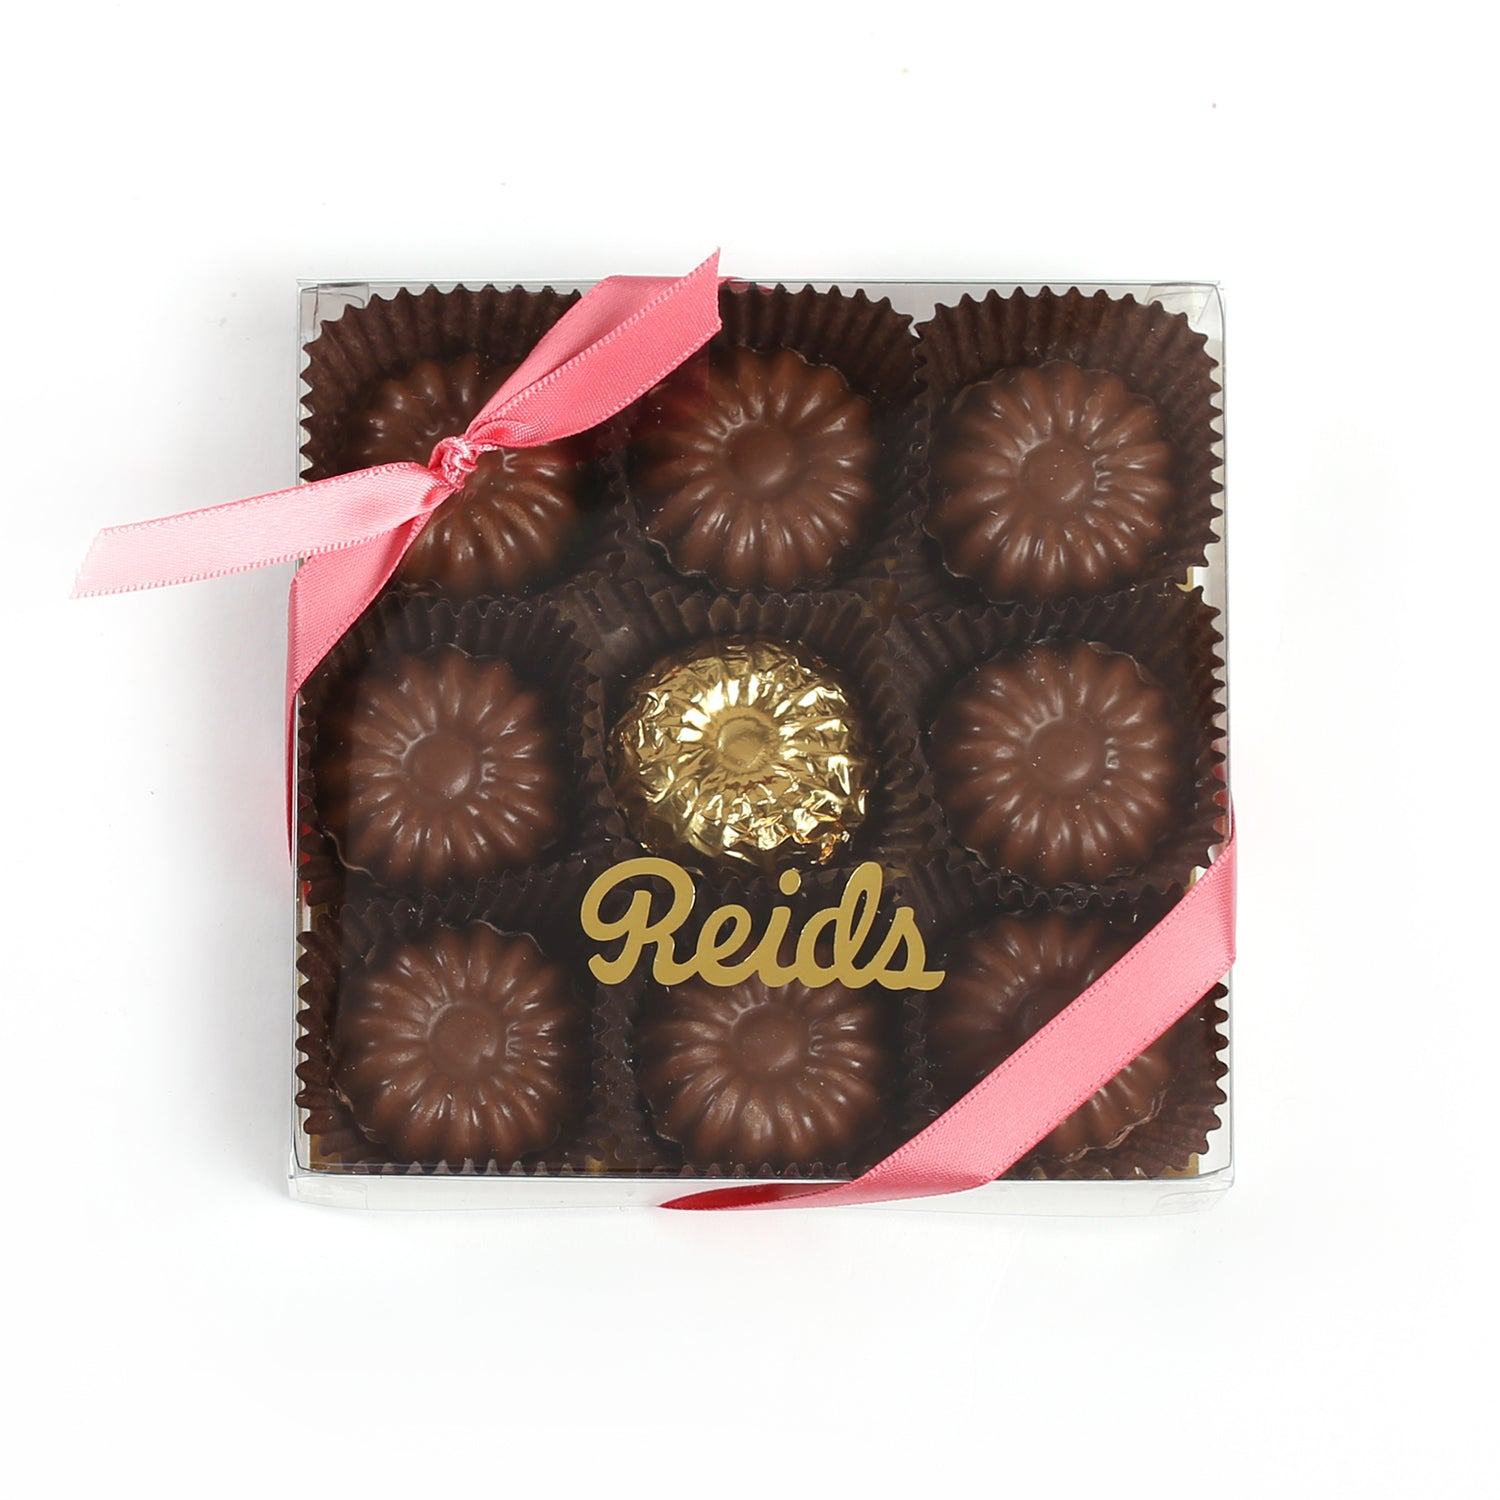 Product photo of flower chocolate bites box with pink ribbon